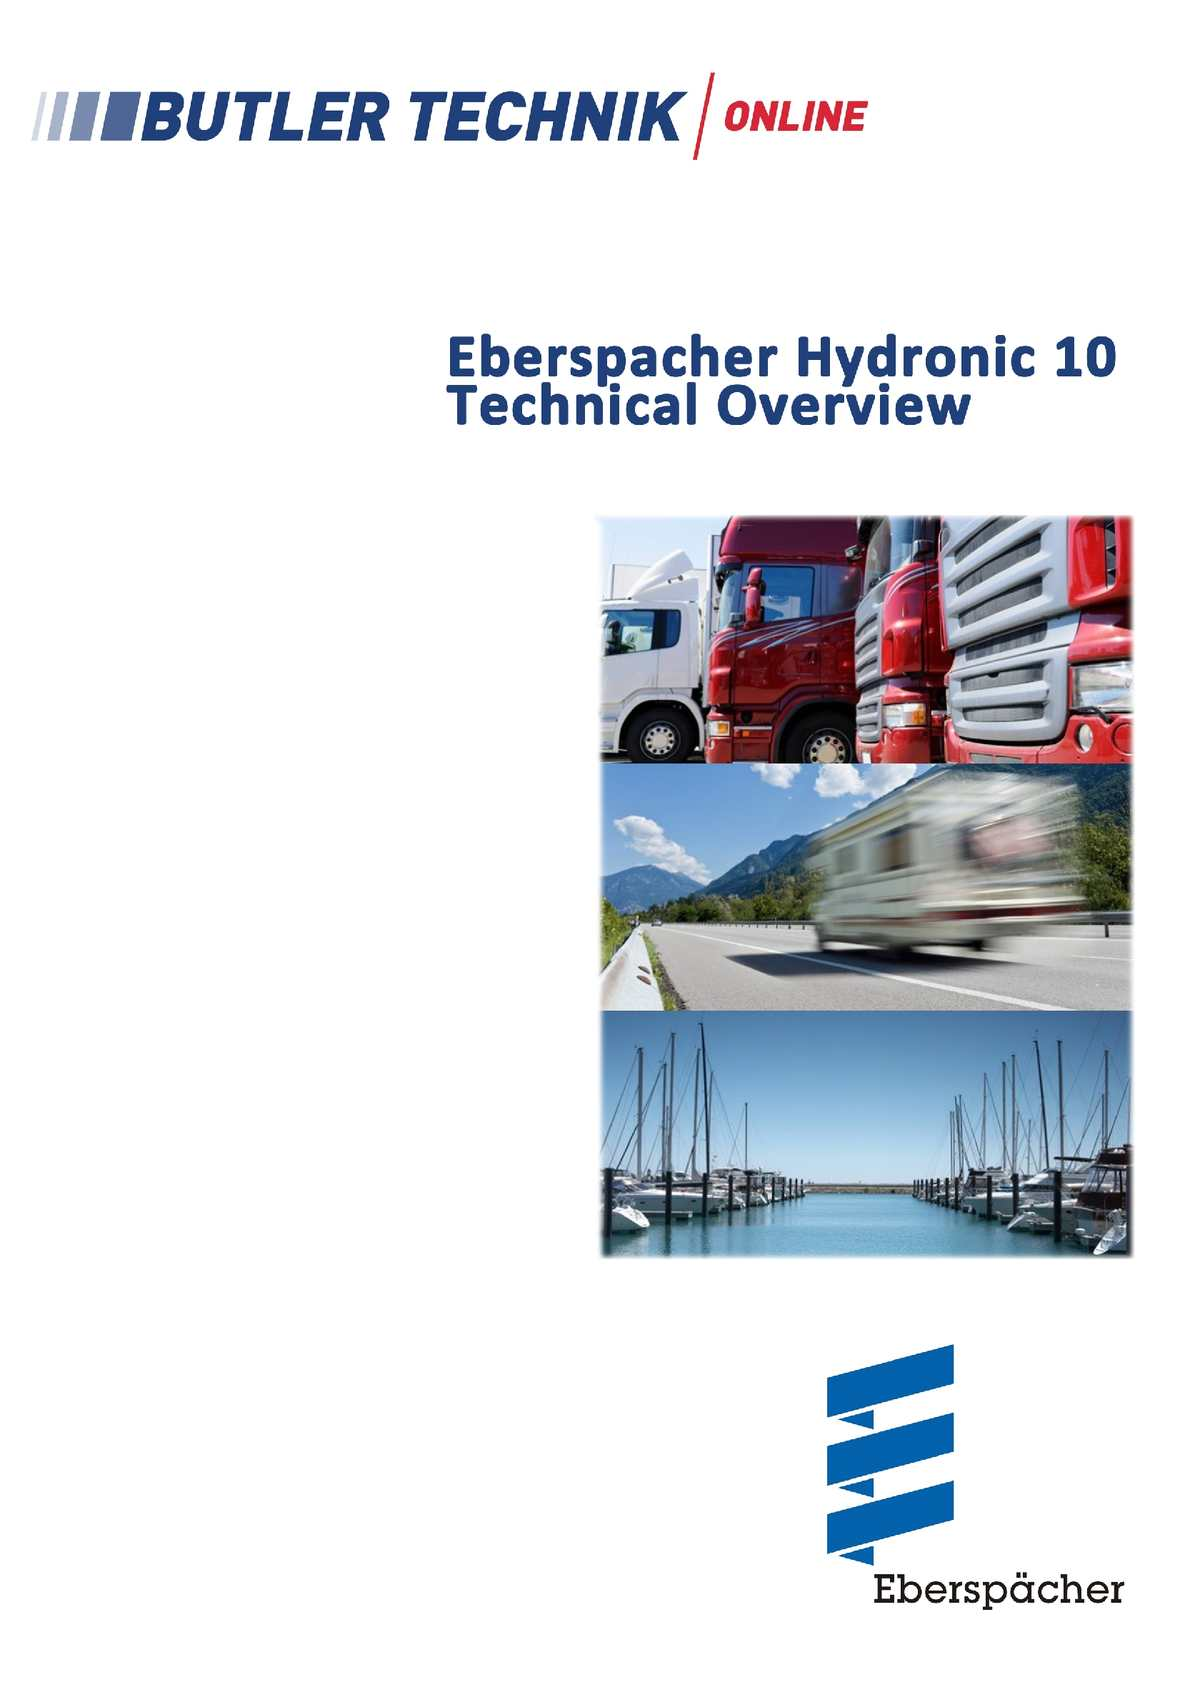 Calamo Eberspahcer Hydronic 10 Technical Manual Trs Jack Wiring Diagram Free Engine Image For User